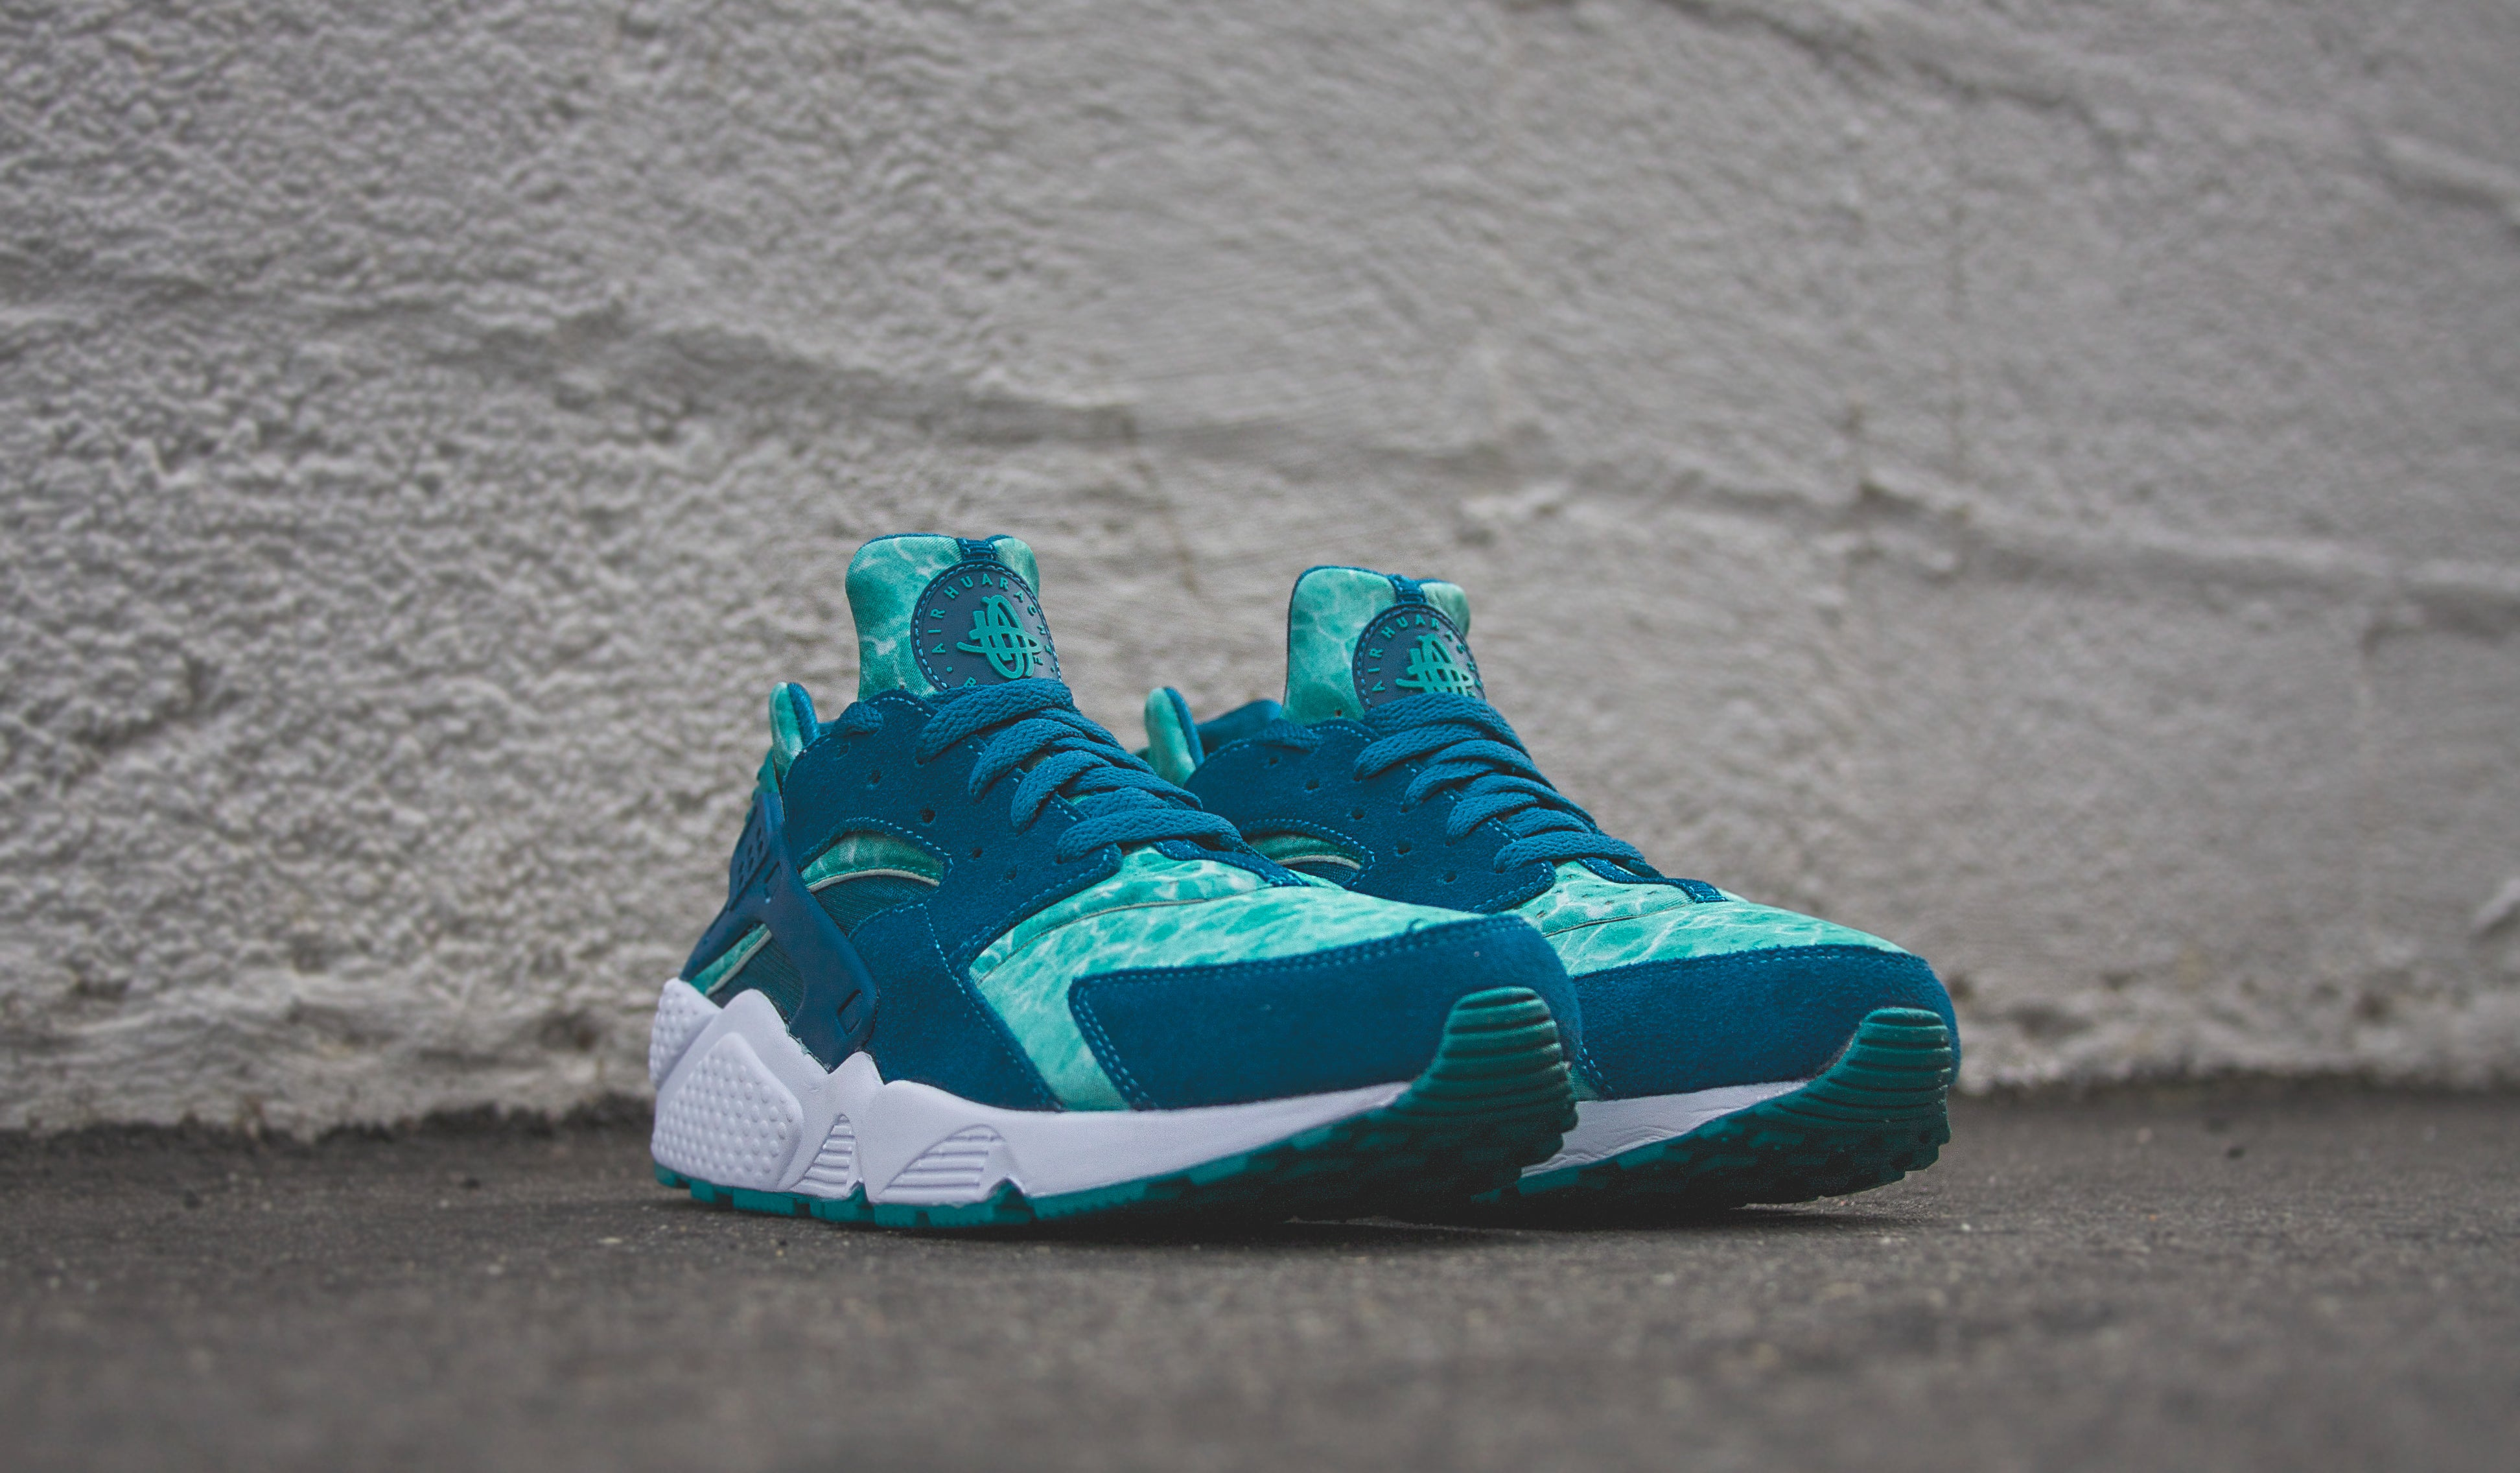 big sale 0ca20 44f19 The Nike Huarache Drops in a Green Abyss and Turbo Green  Nike Air Huarache  Color Green Abyss Turbo Green Style Code 318429- ...